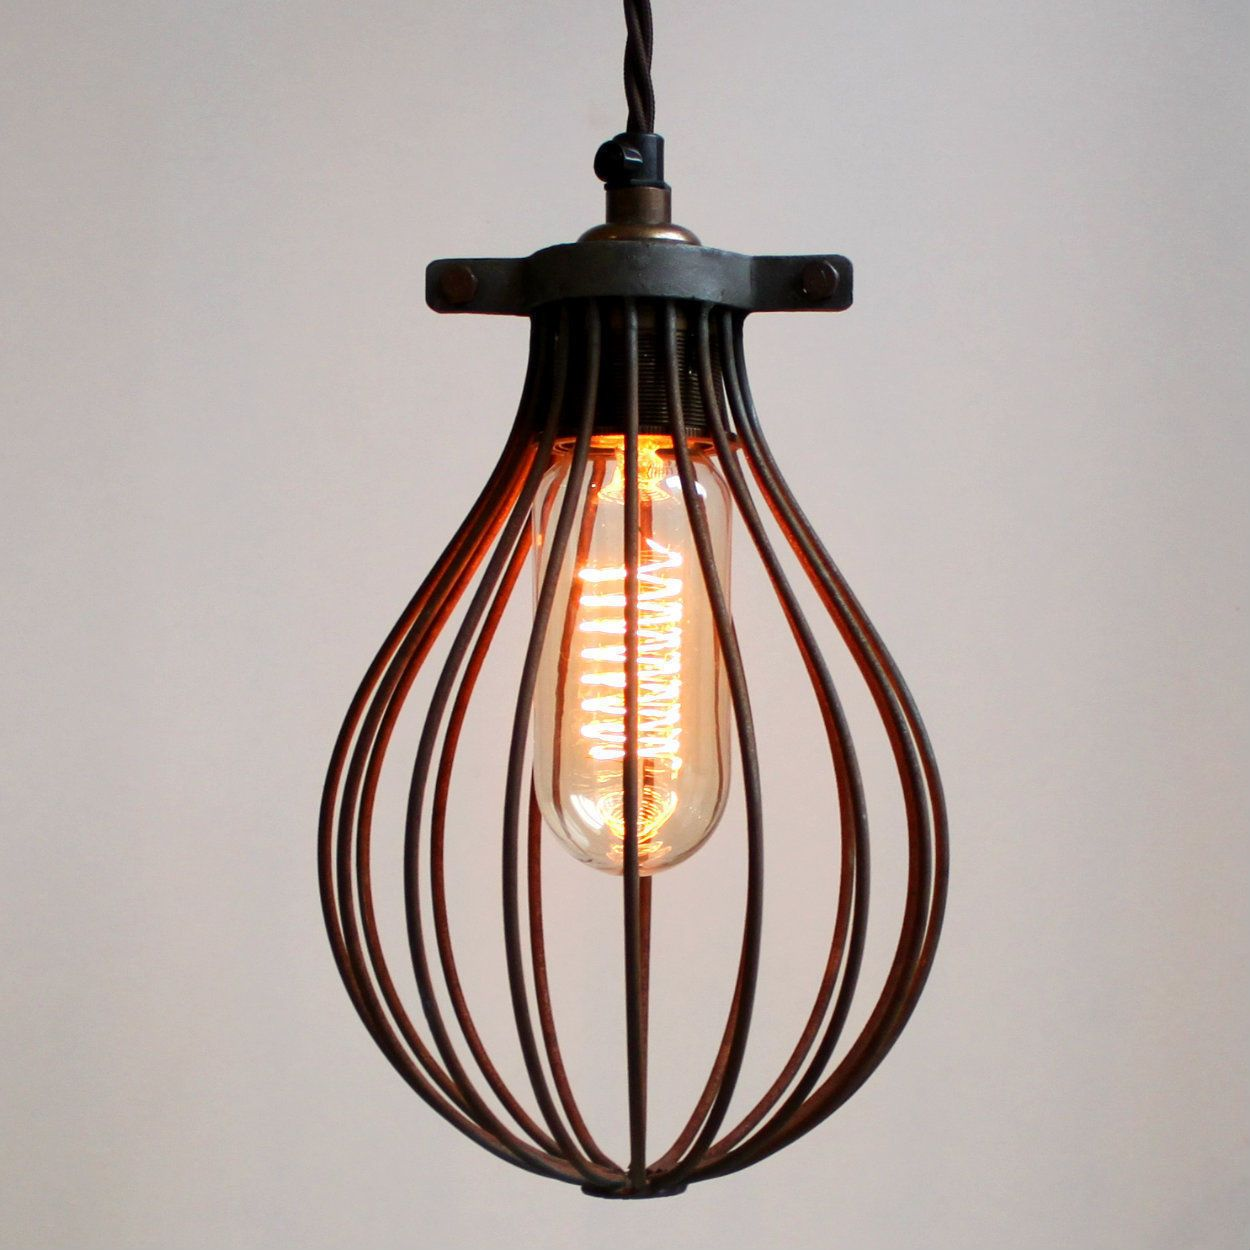 Rust Effect Balloon Cage For A Industrial Vintage Style Pendant Light Or Lamp Industrial Pendant Lights Cage Pendant Light Pendant Light